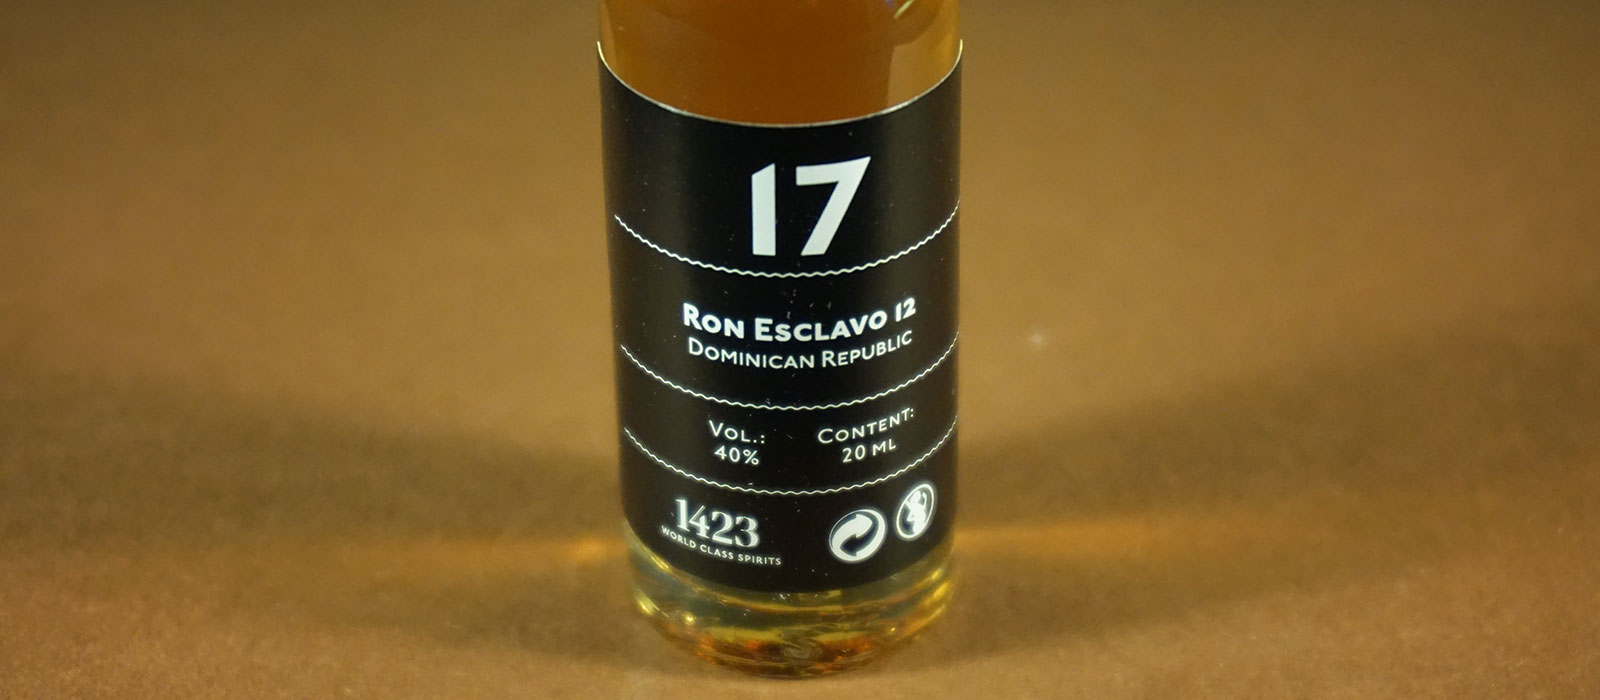 24 Days of Rum 2017: Dag 17 – Ron Esclavo 12